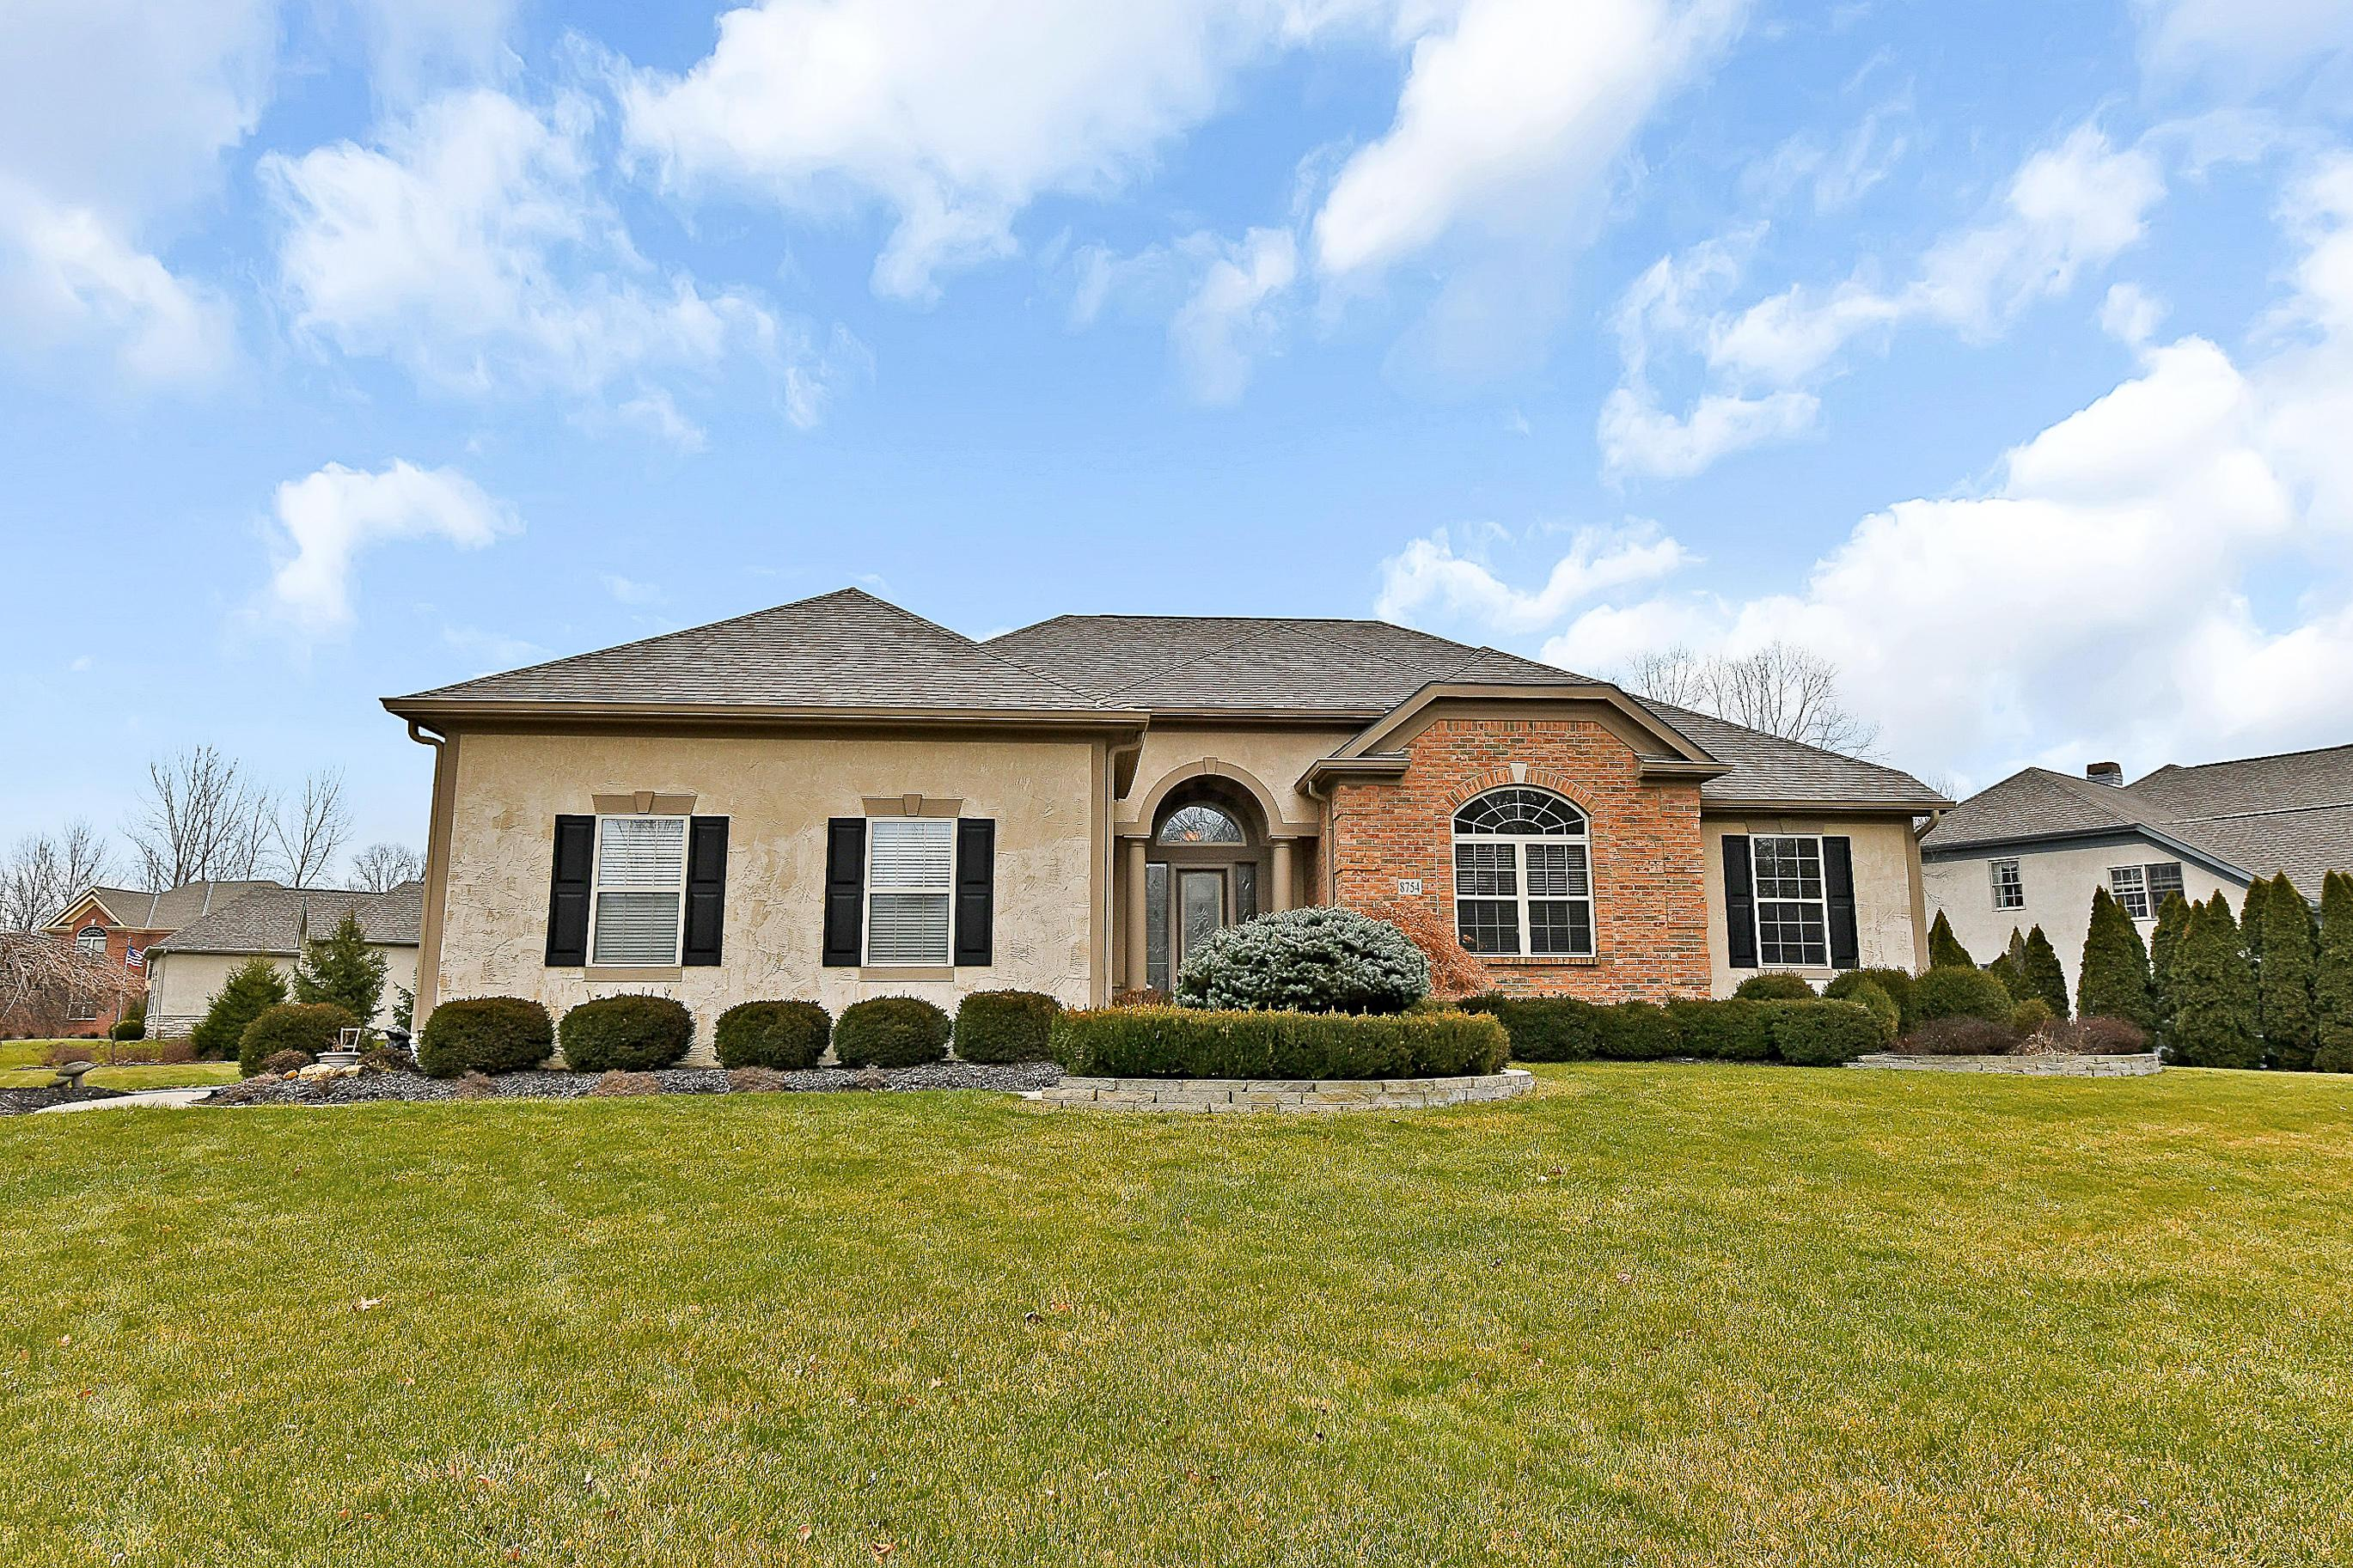 Photo of 8754 Swisher Creek Crossing, New Albany, OH 43054